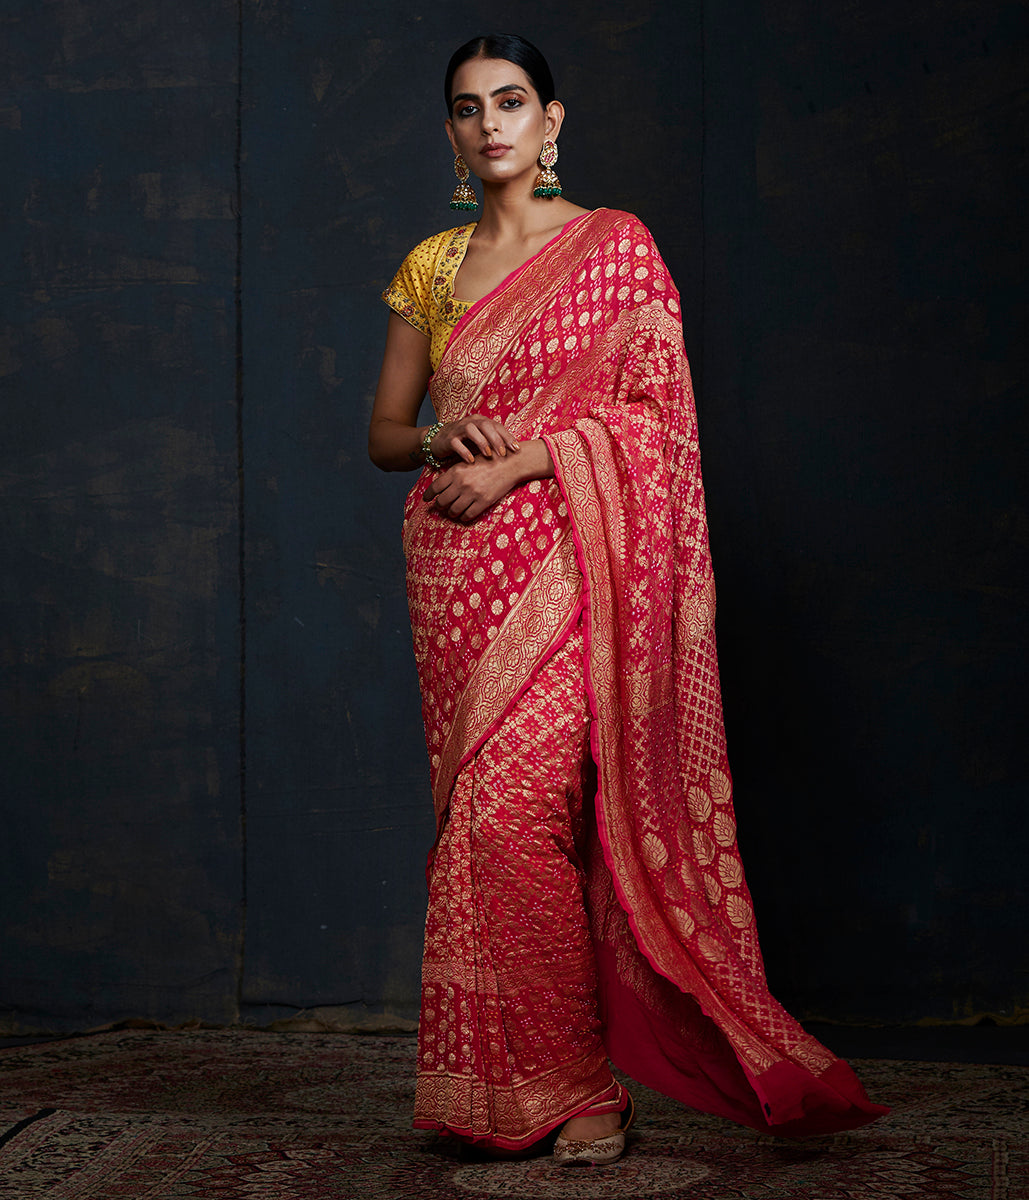 Handwoven Banarasi Bandhej Saree in Pink and peach ombre dye